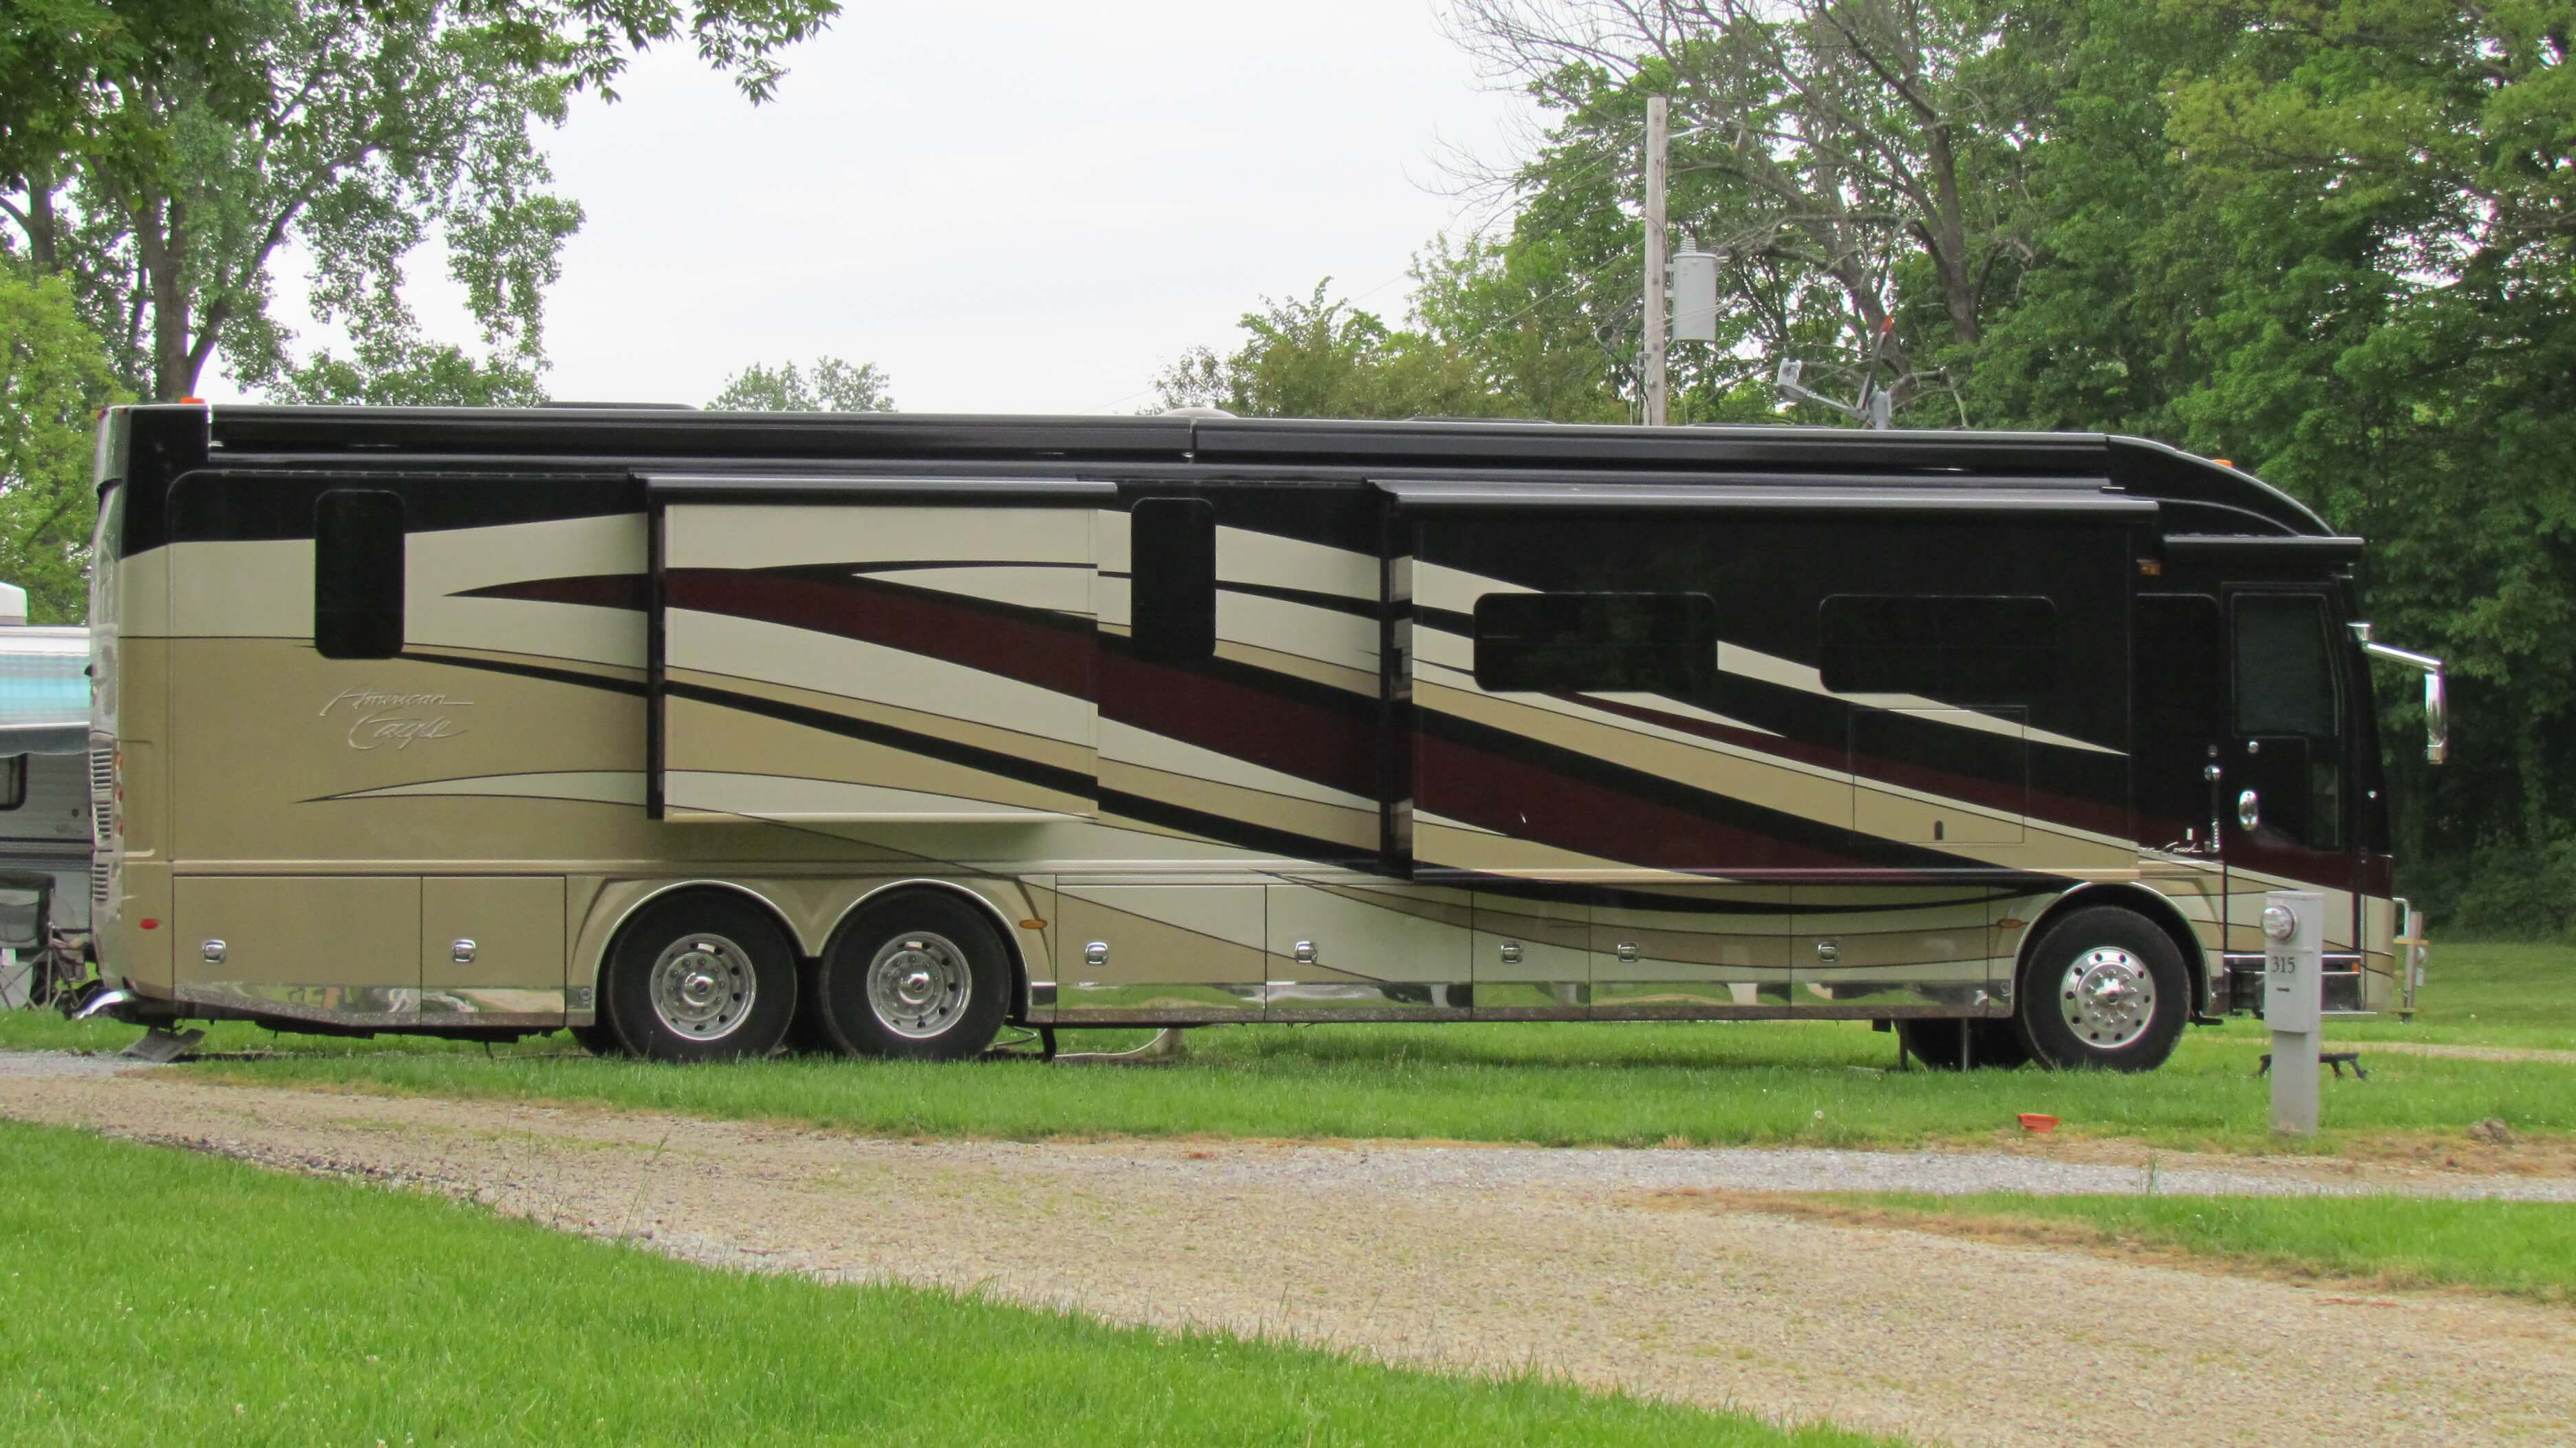 Camping Reservations In Modoc 50 Amp Rv Hookup Large Pull Thru